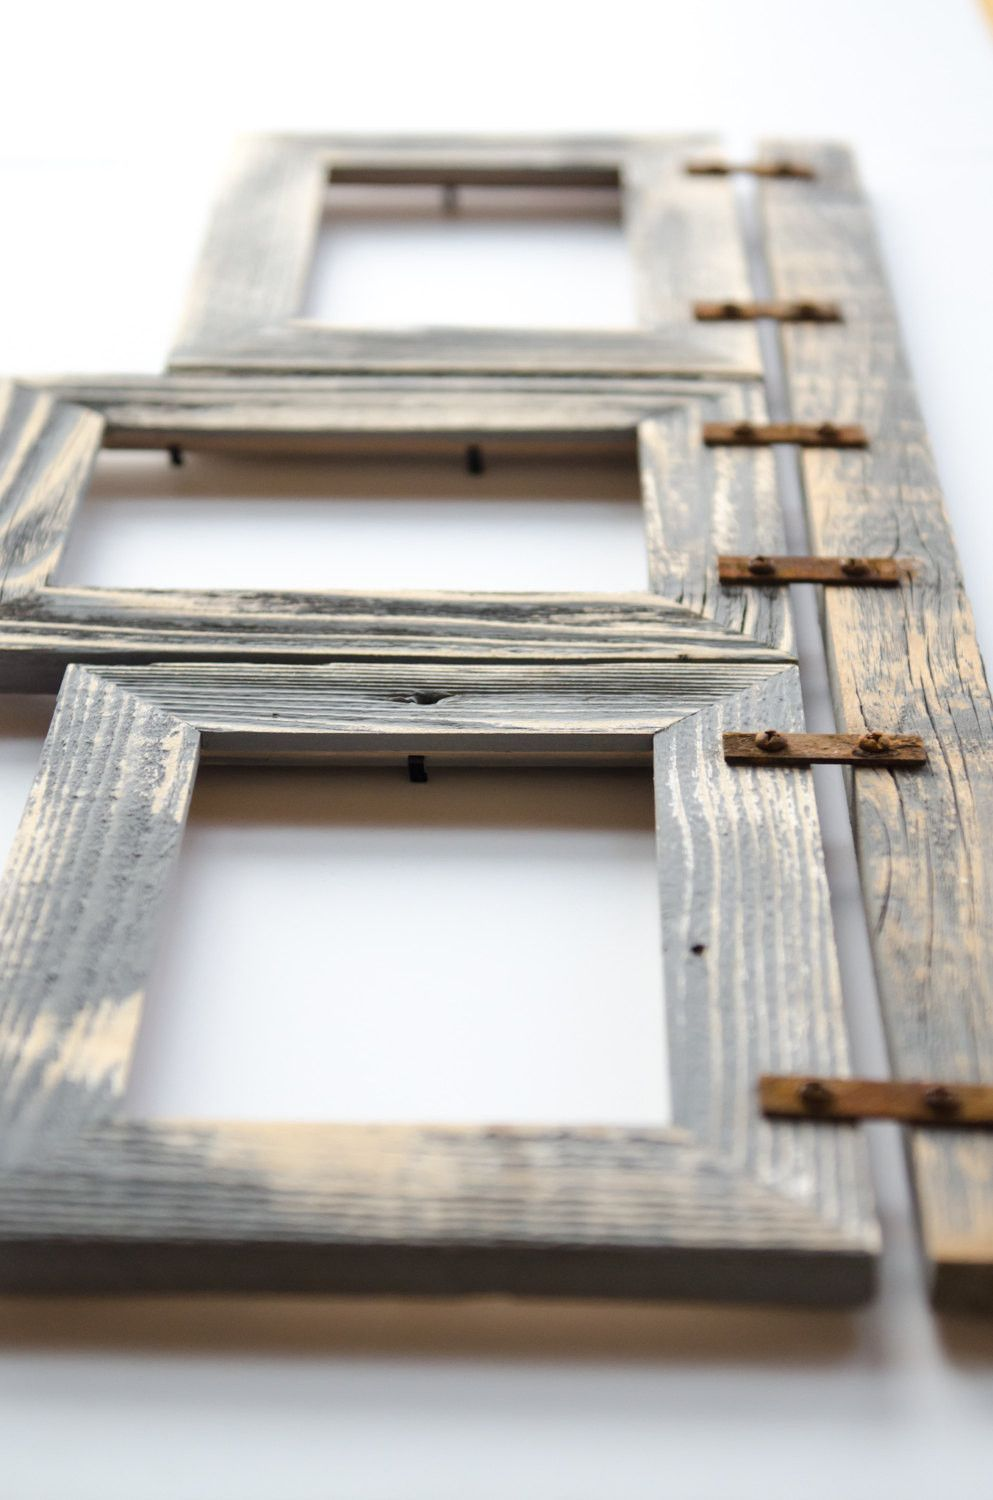 2 | Pinterest | Repurposed wood projects, Rustic picture frames and ...